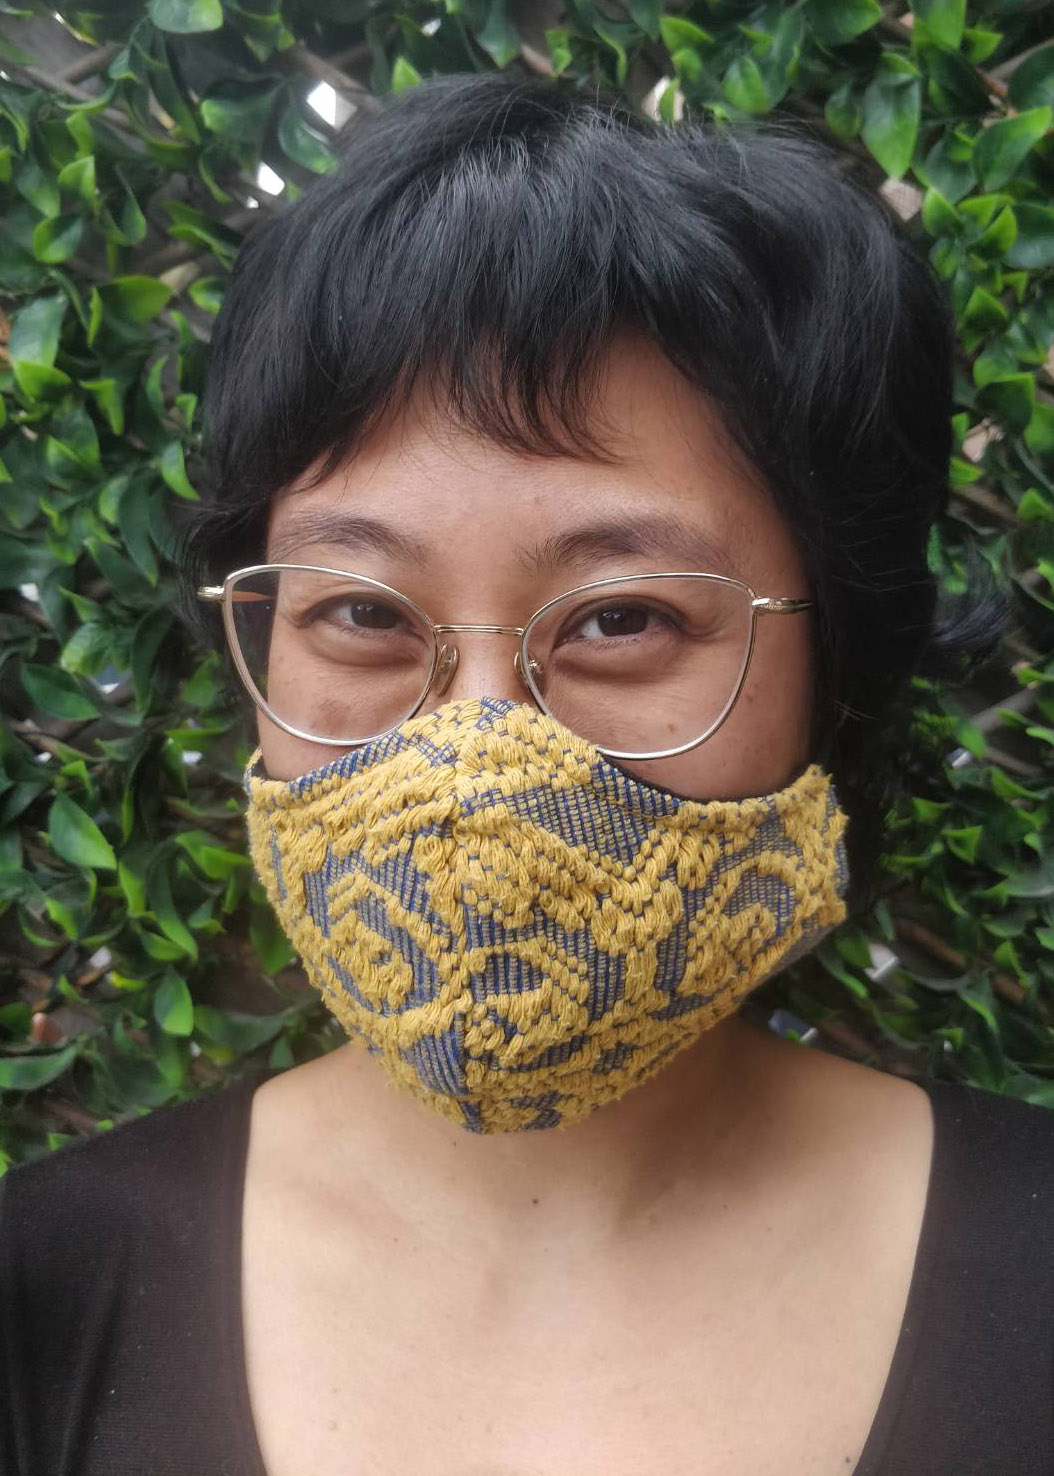 woman in her thirties smiles while wearing a decorative mask